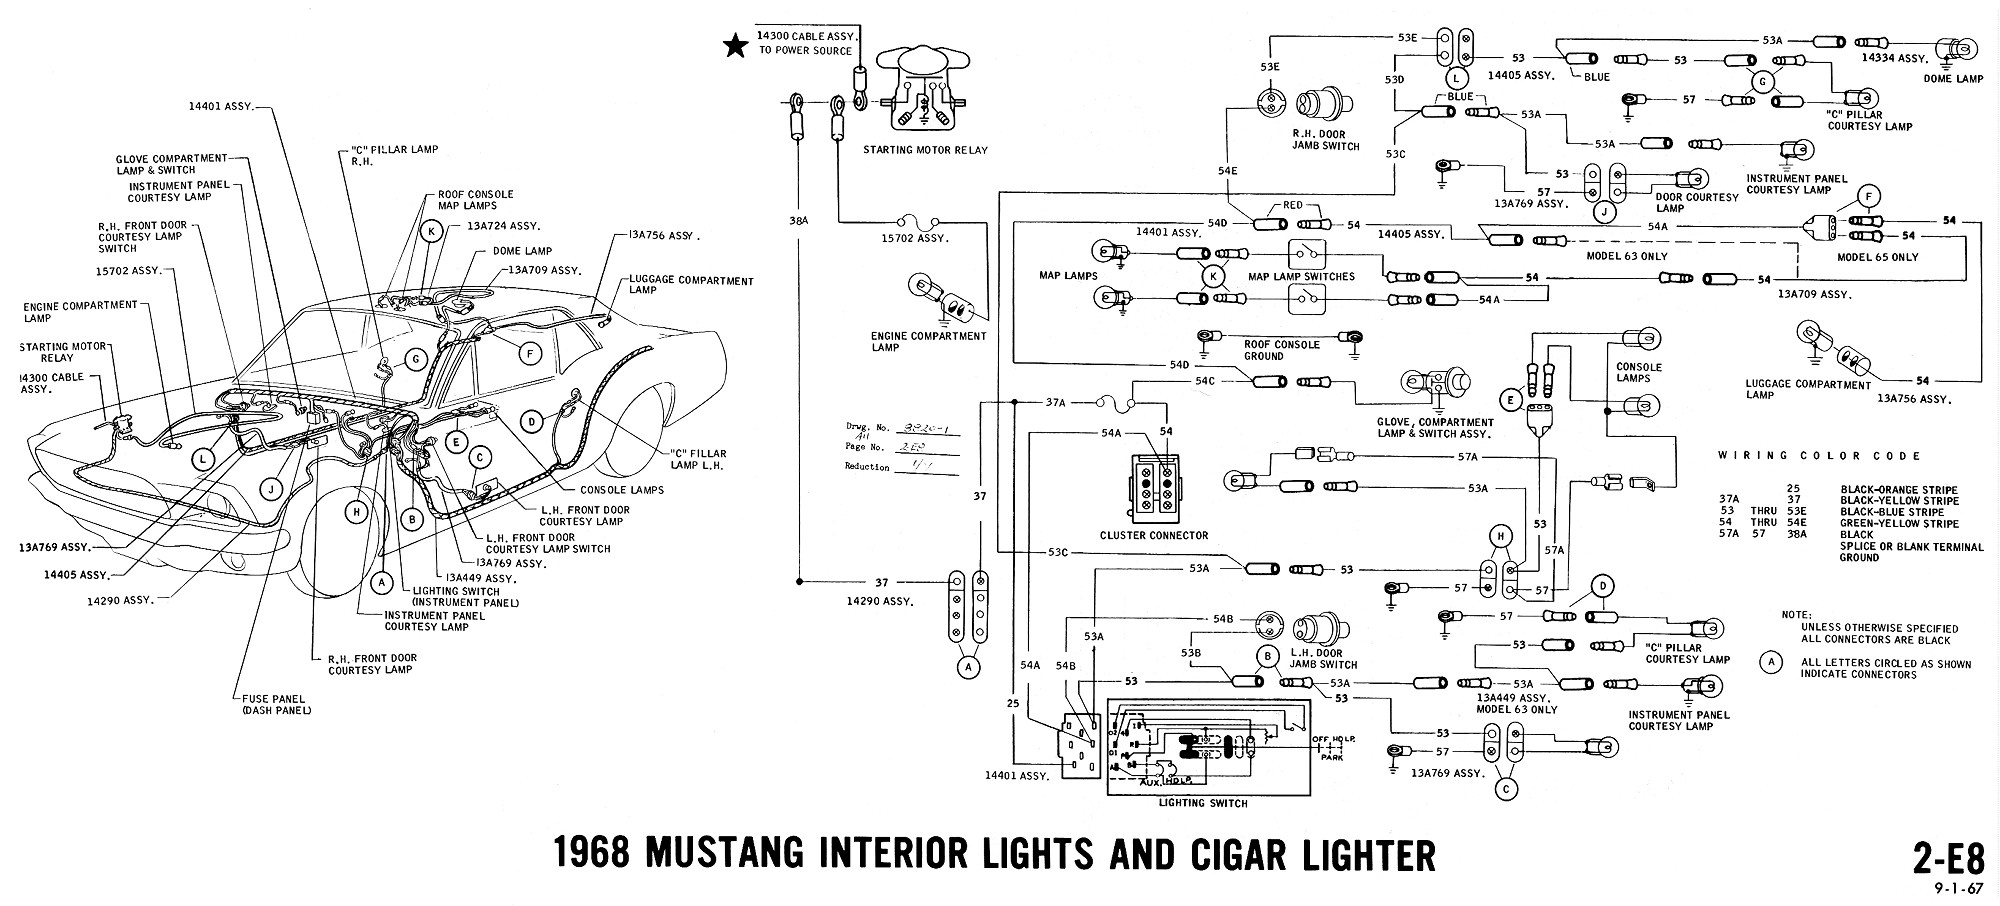 1968 mustang wiring diagram interior lights cigar lighter 1968 mustang wiring diagrams and vacuum schematics average joe 1966 mustang wiring diagrams at nearapp.co